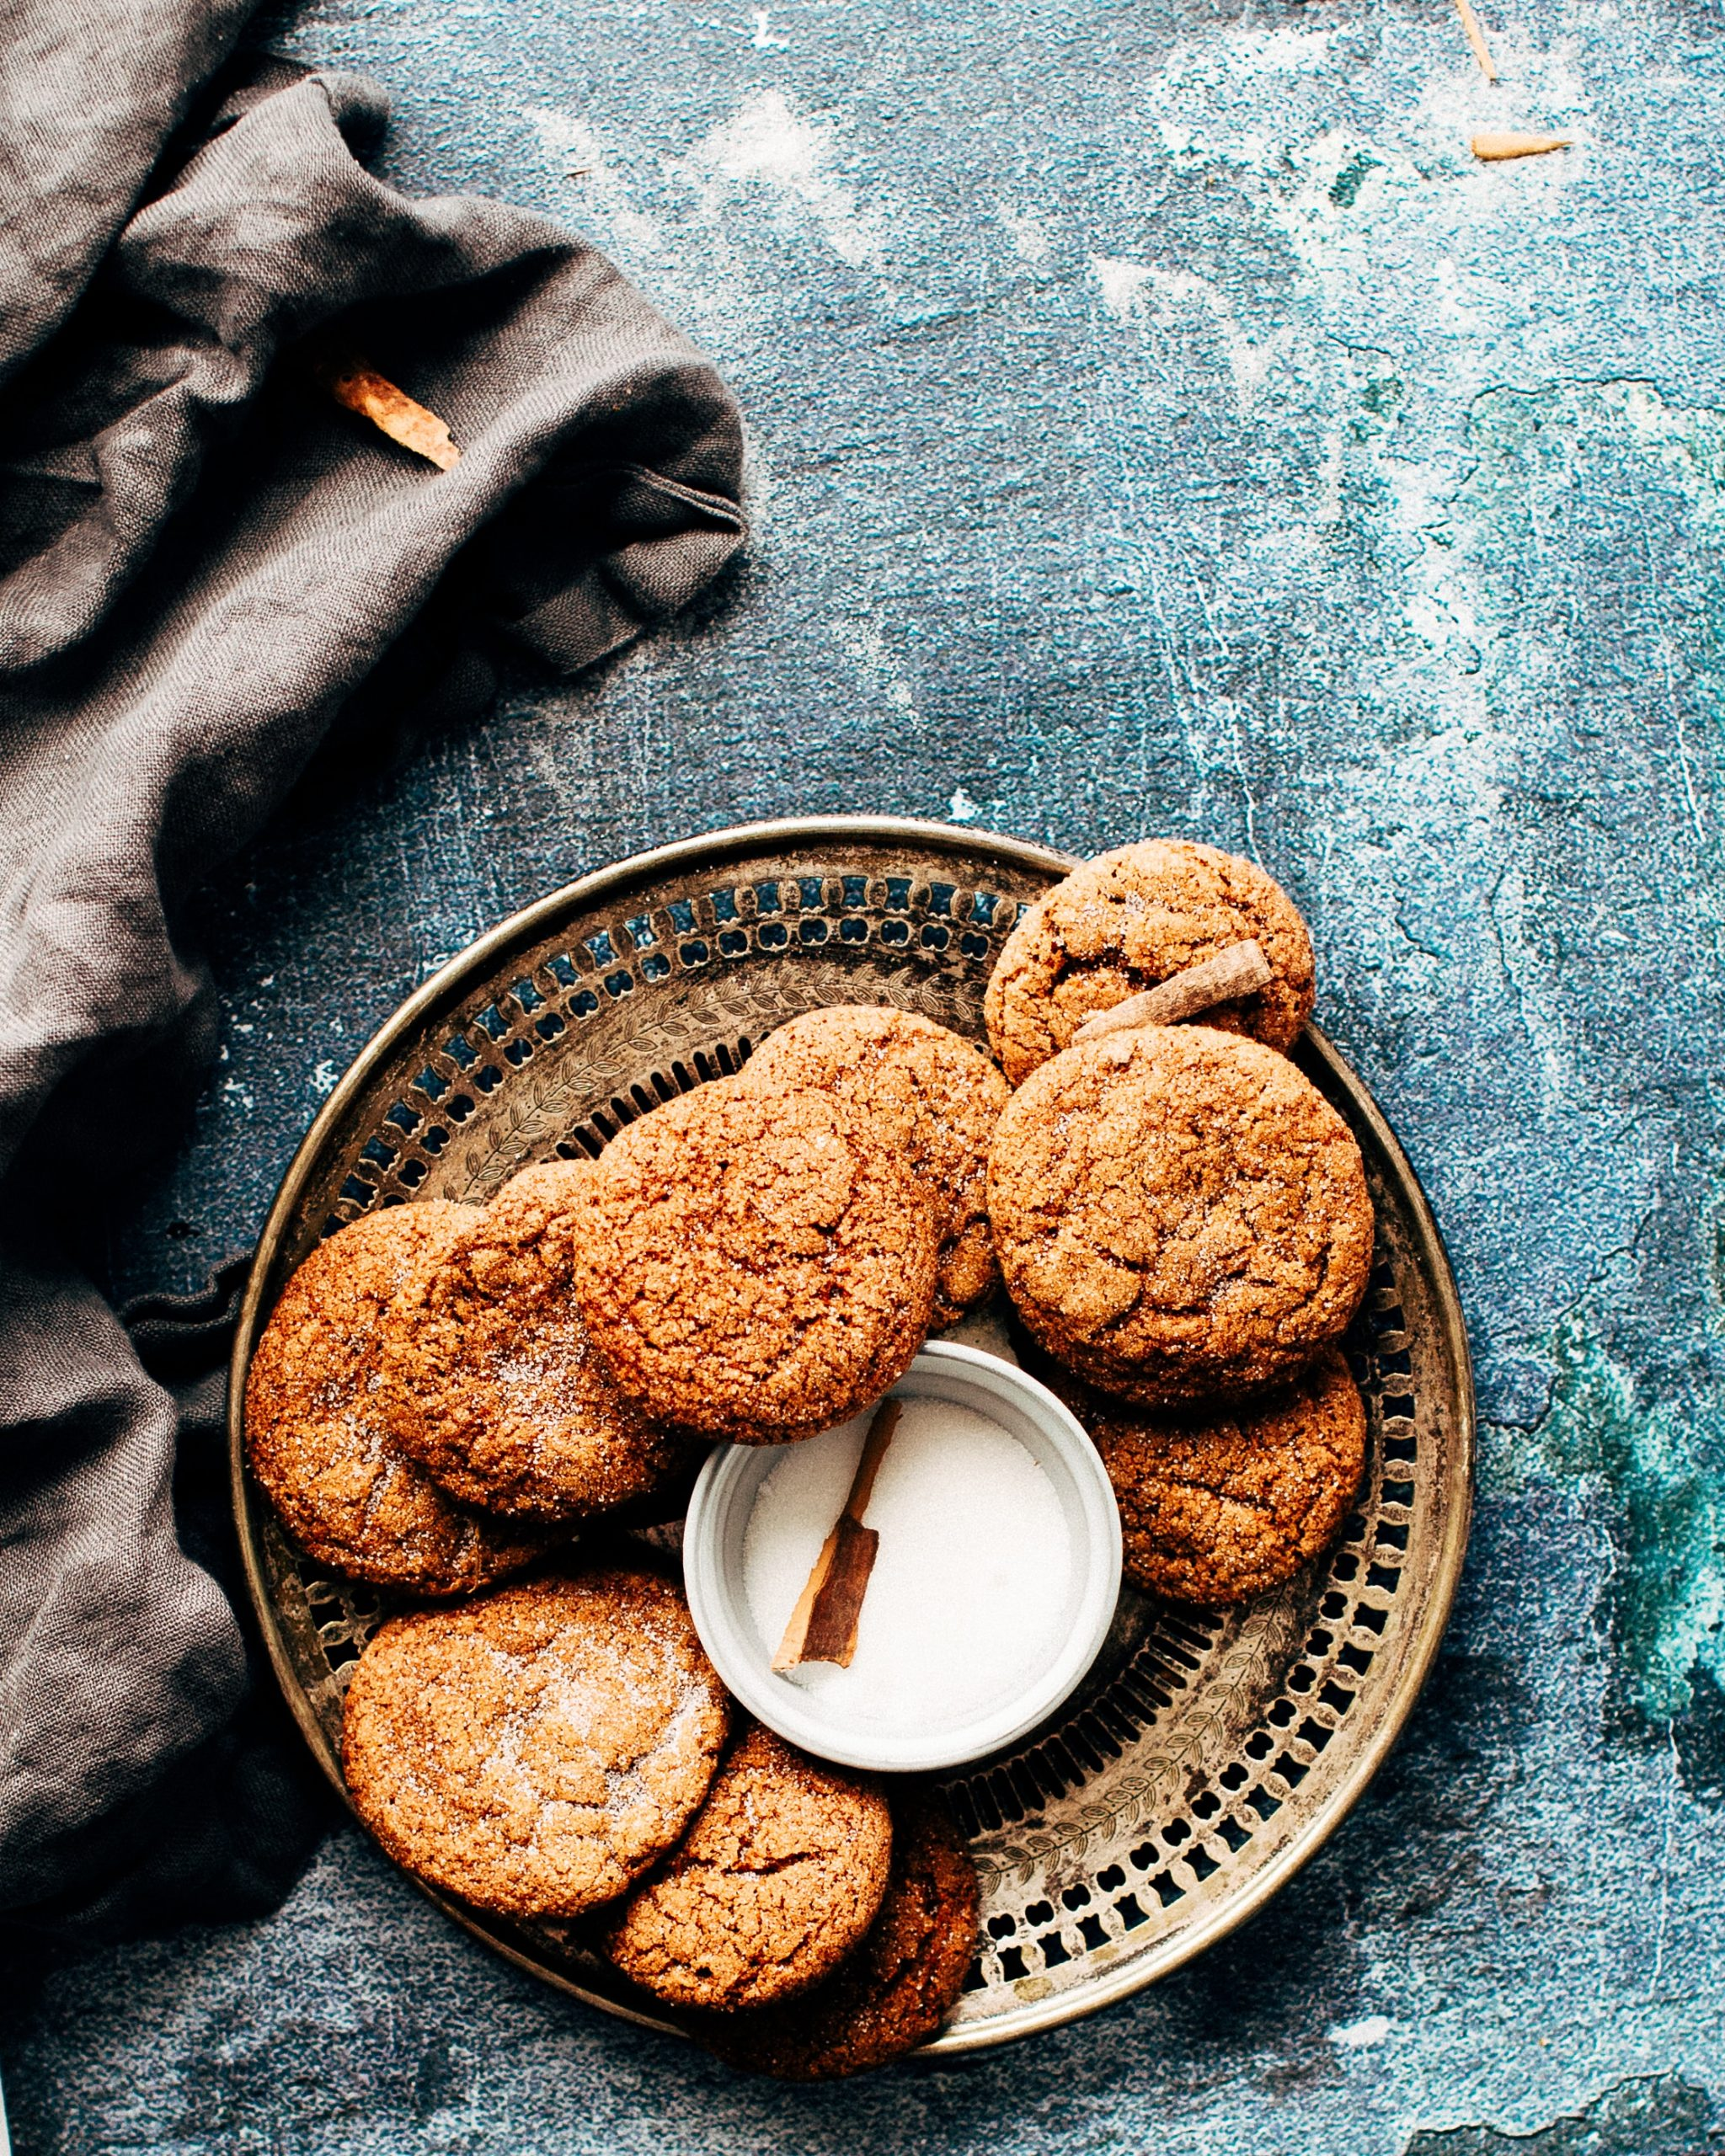 Classic Snickerdoodle Cookie Recipe In Just A Few Simple Steps